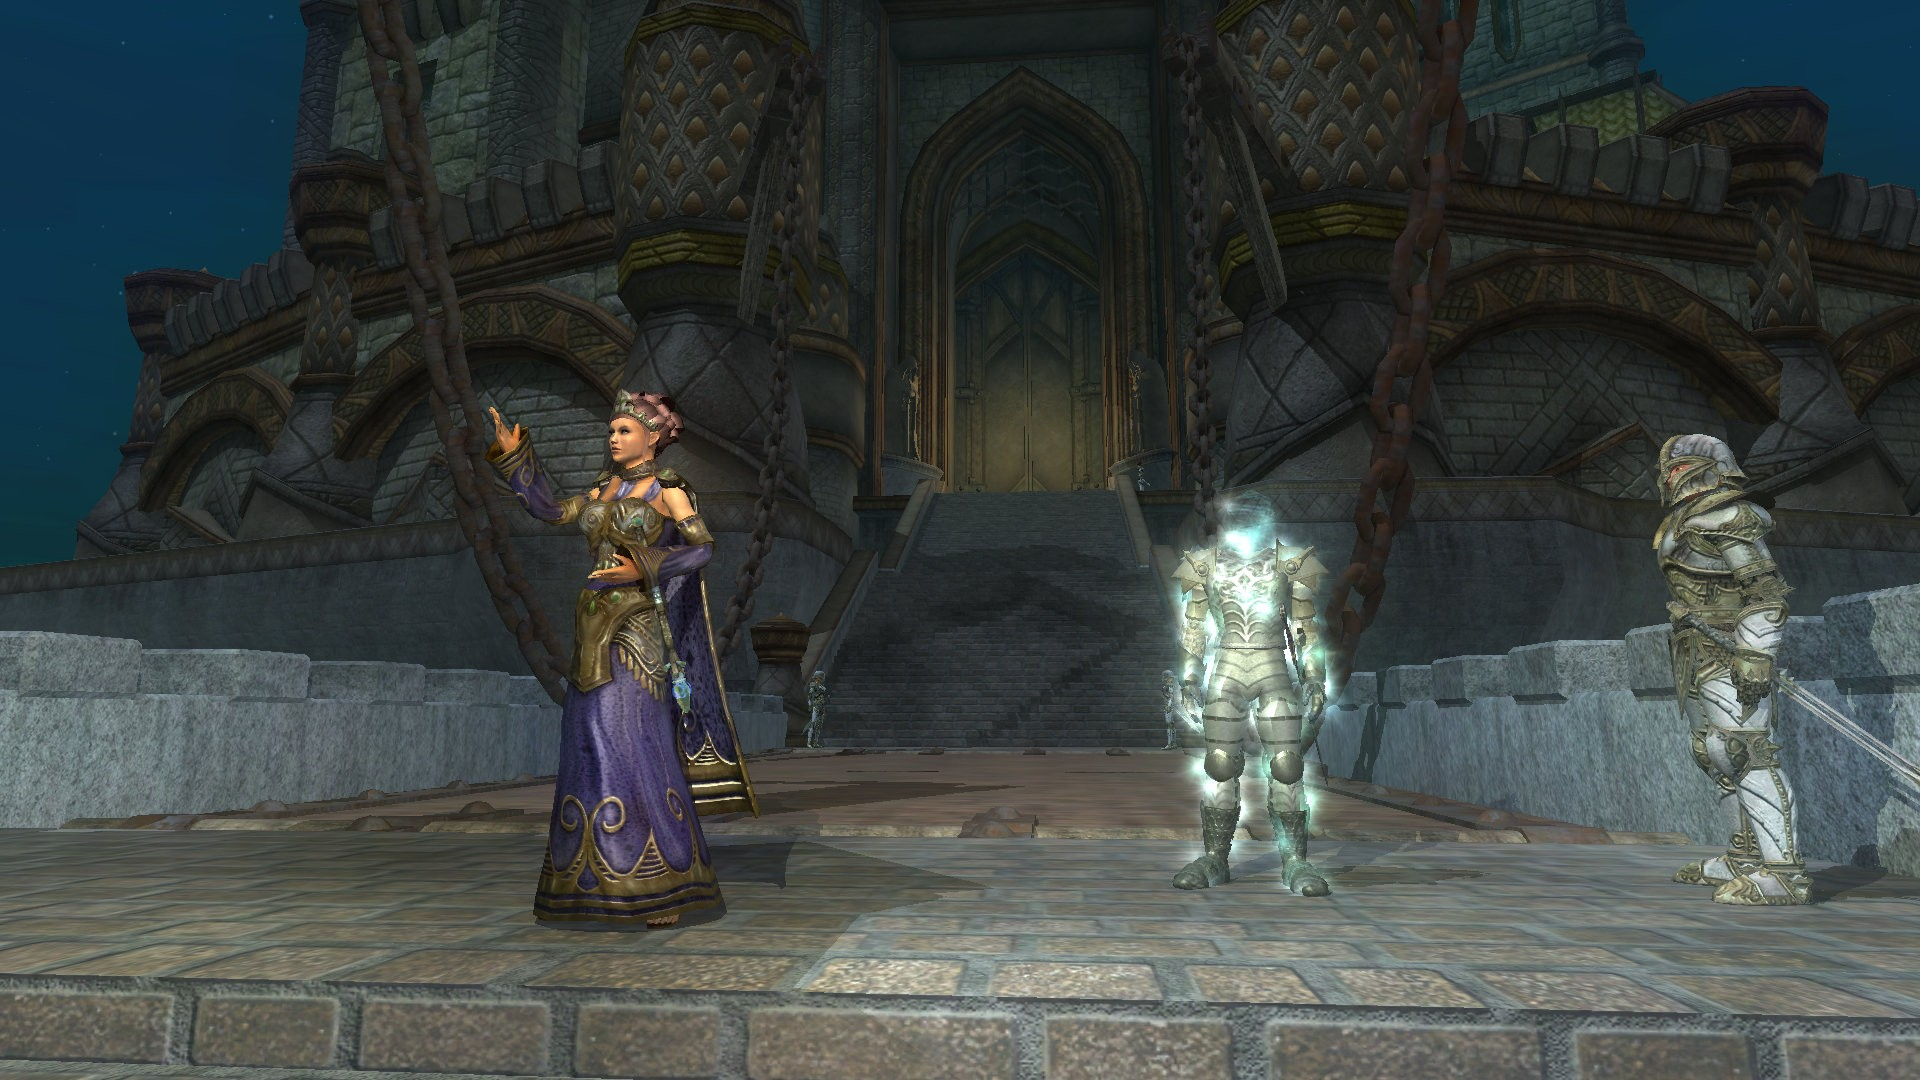 EverQuest II - Queen and King Bayle in Qeynos